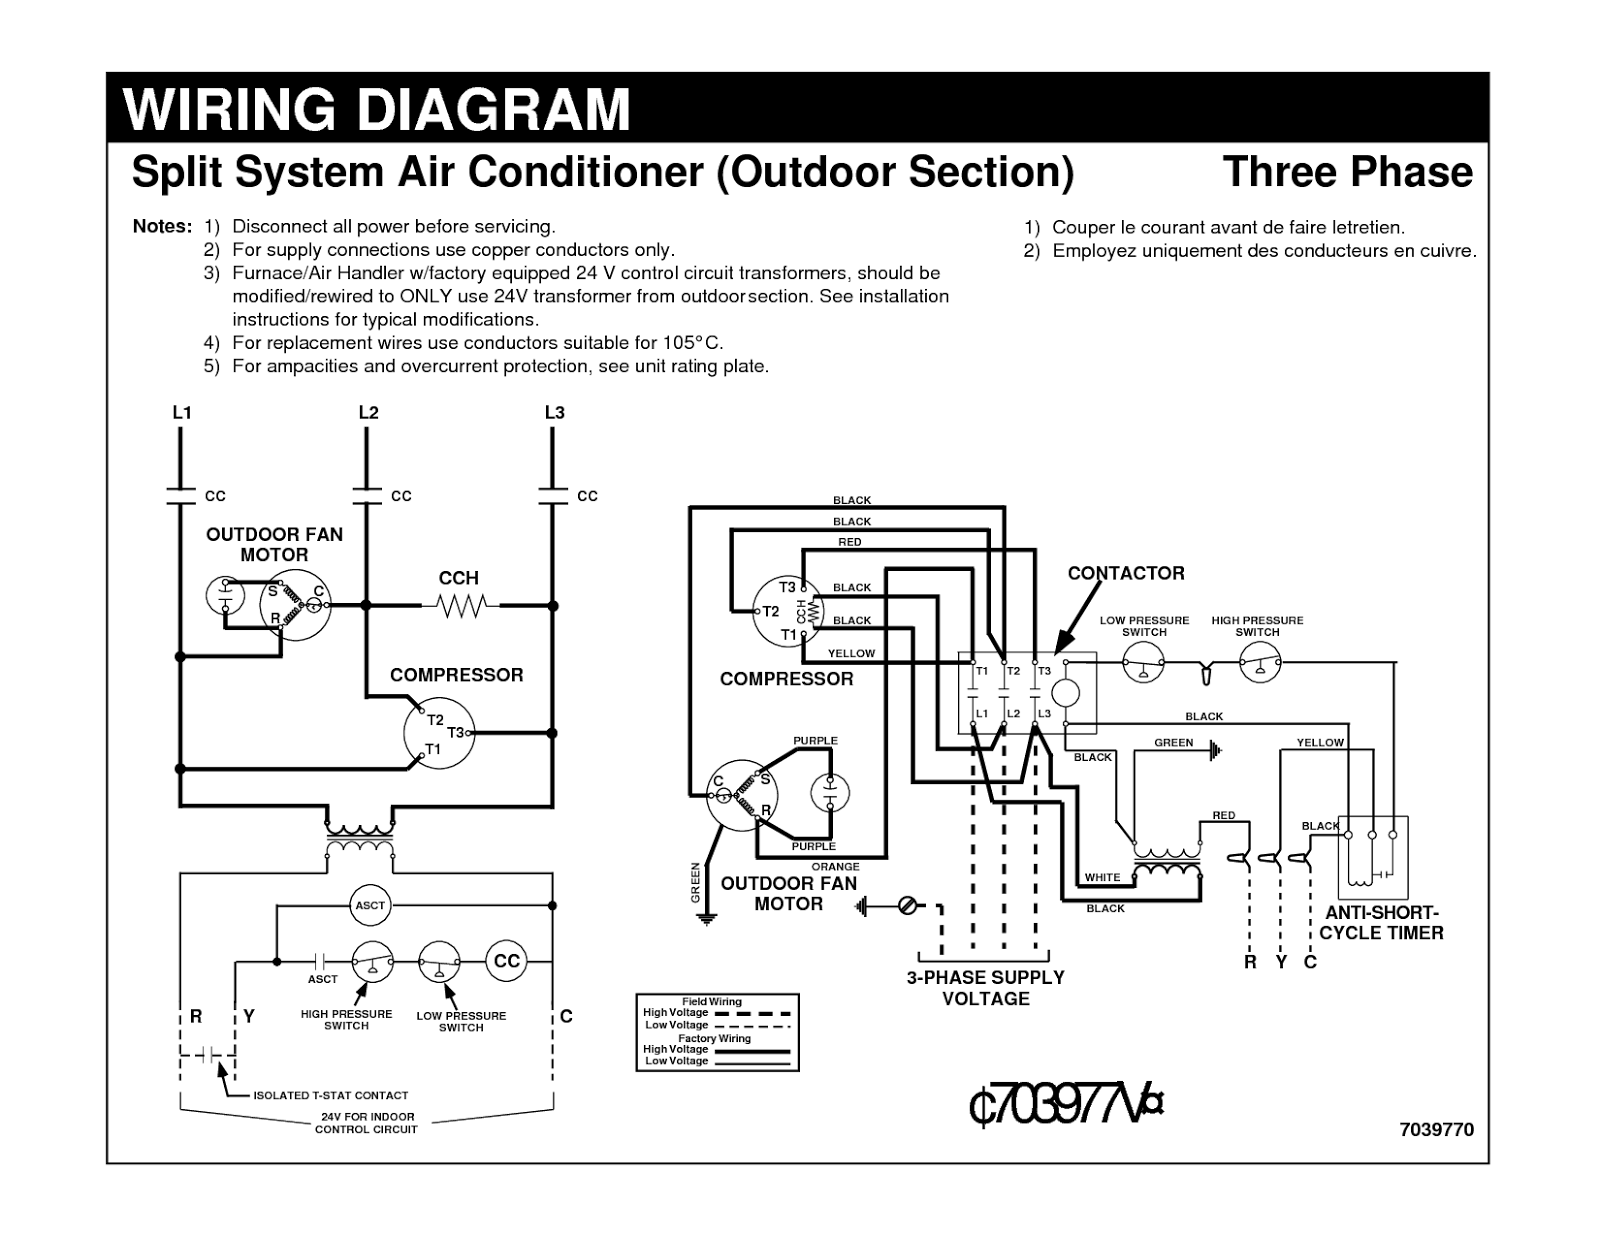 Air Conditioner Wiring Schematic - Go Wiring Diagram on